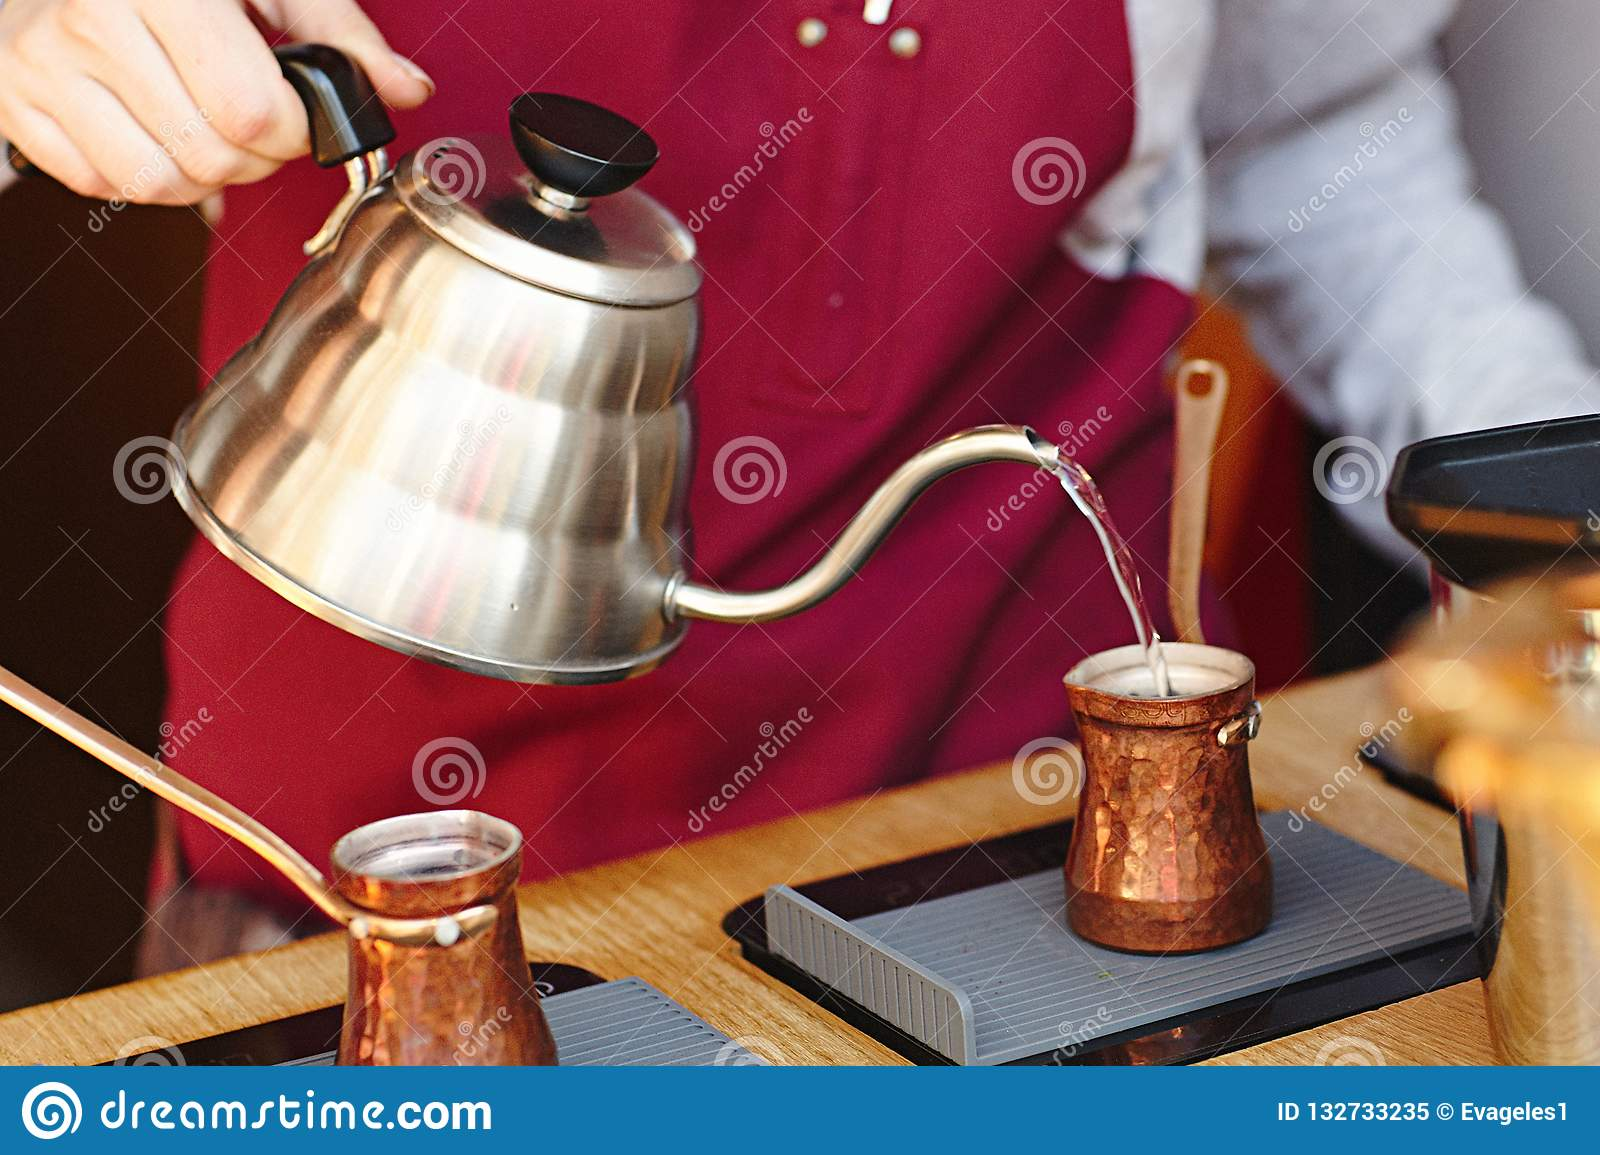 Rustic Turkish cezve, coffeepot, ibrik with boiled coffee beans, water, spices, cinnamon, salt on electric stove and wooden table.